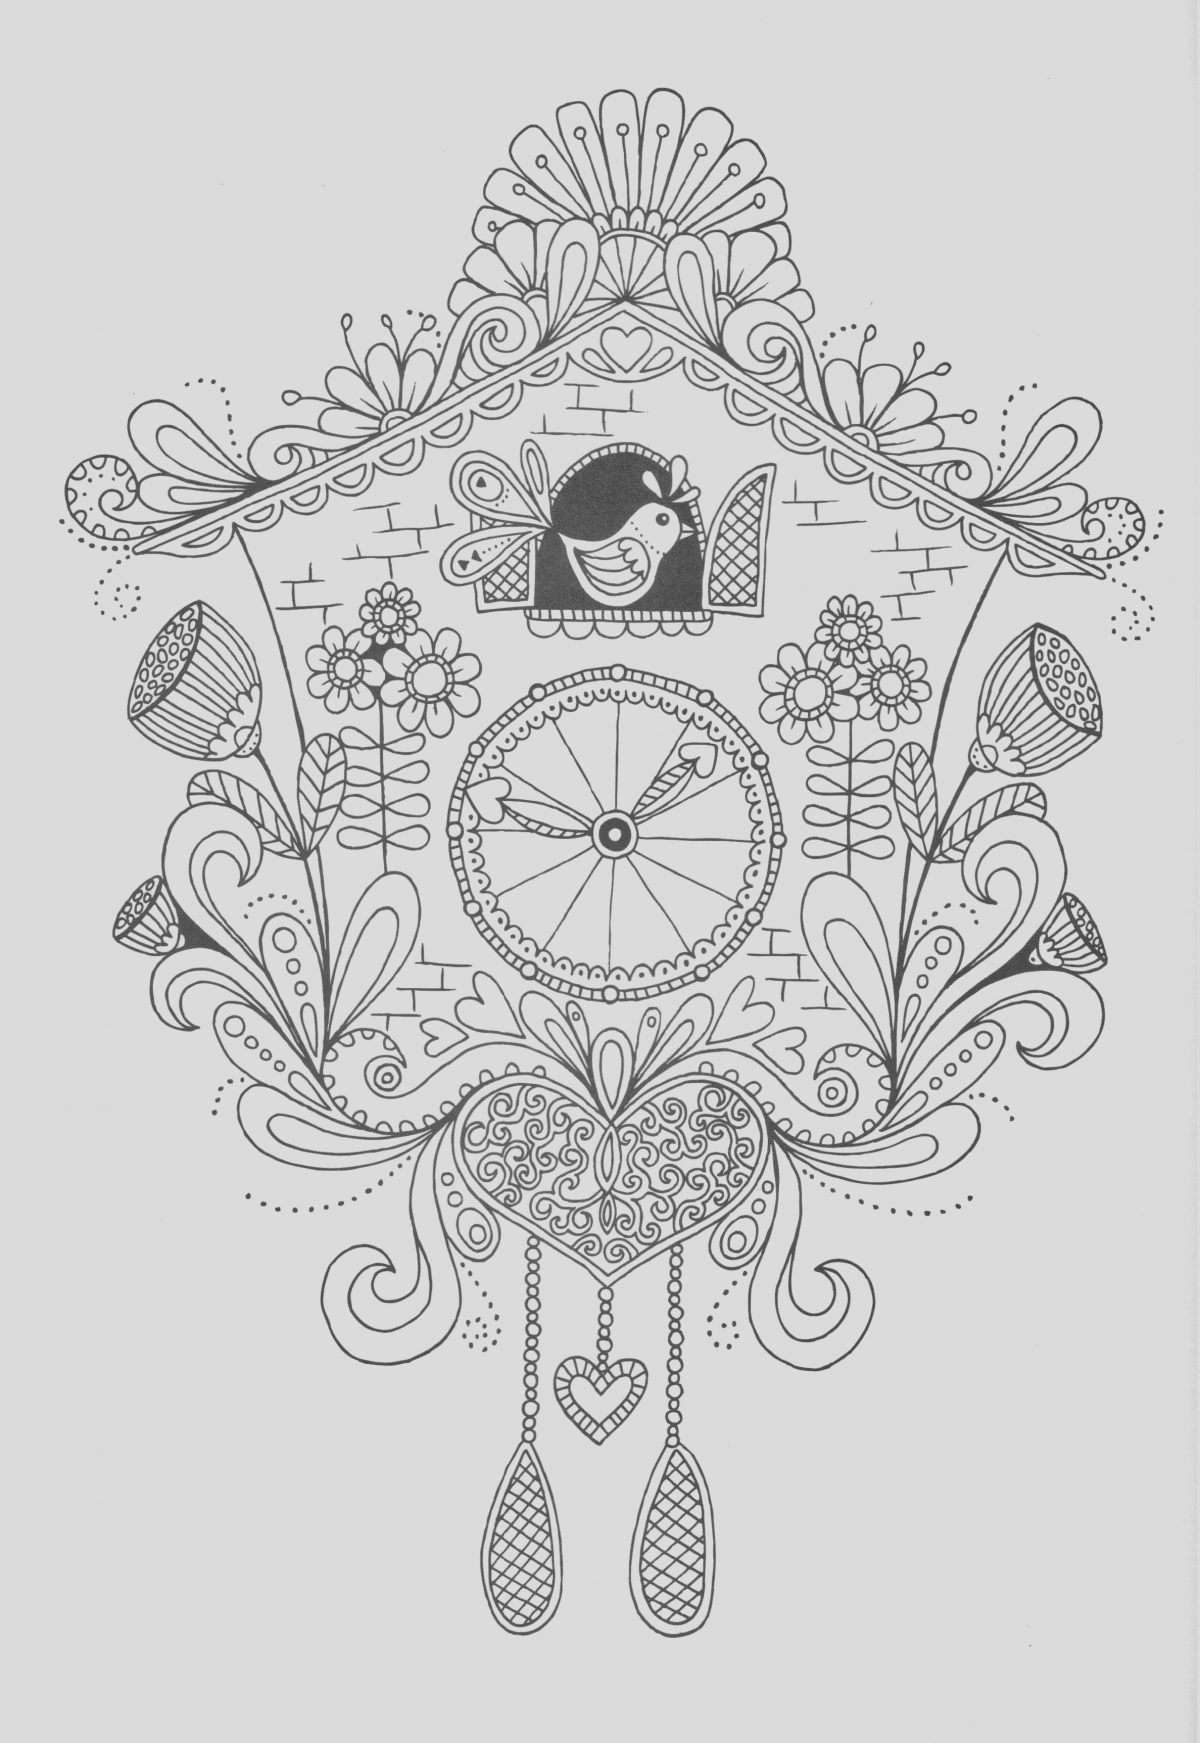 Coloring Groups for Adults Elegant Adult Coloring Page